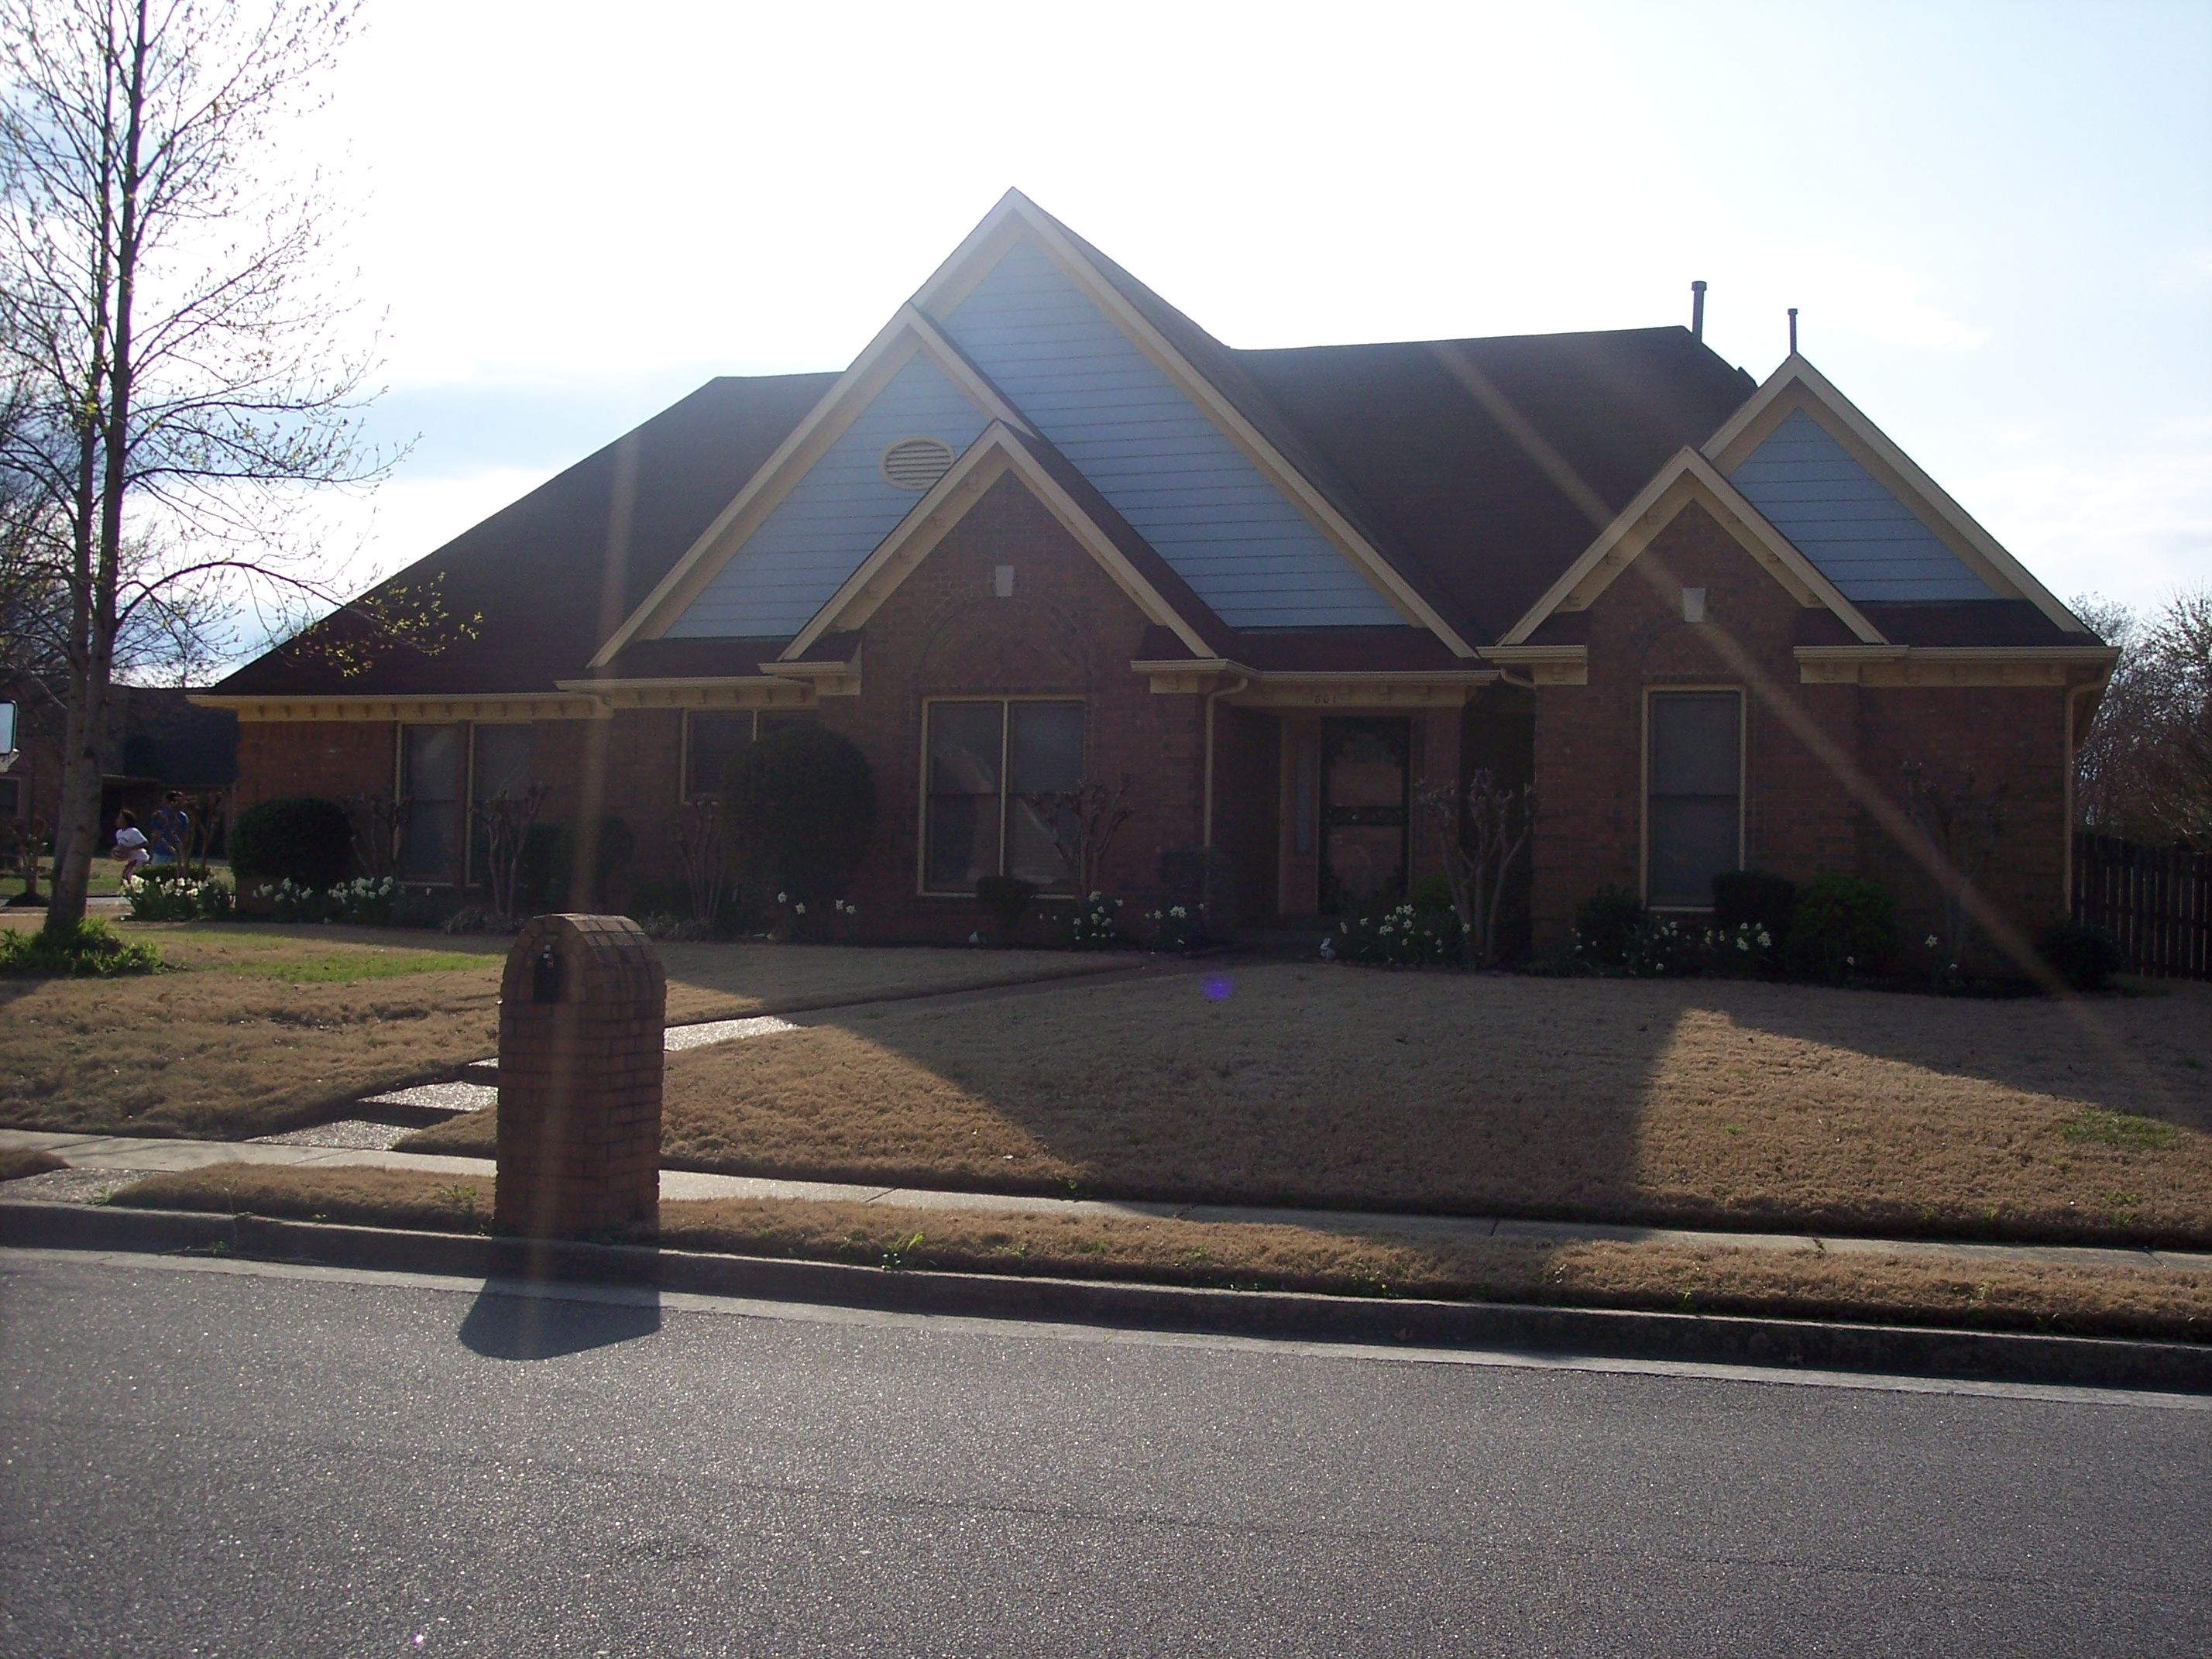 Lubin property management located in memphis tn has